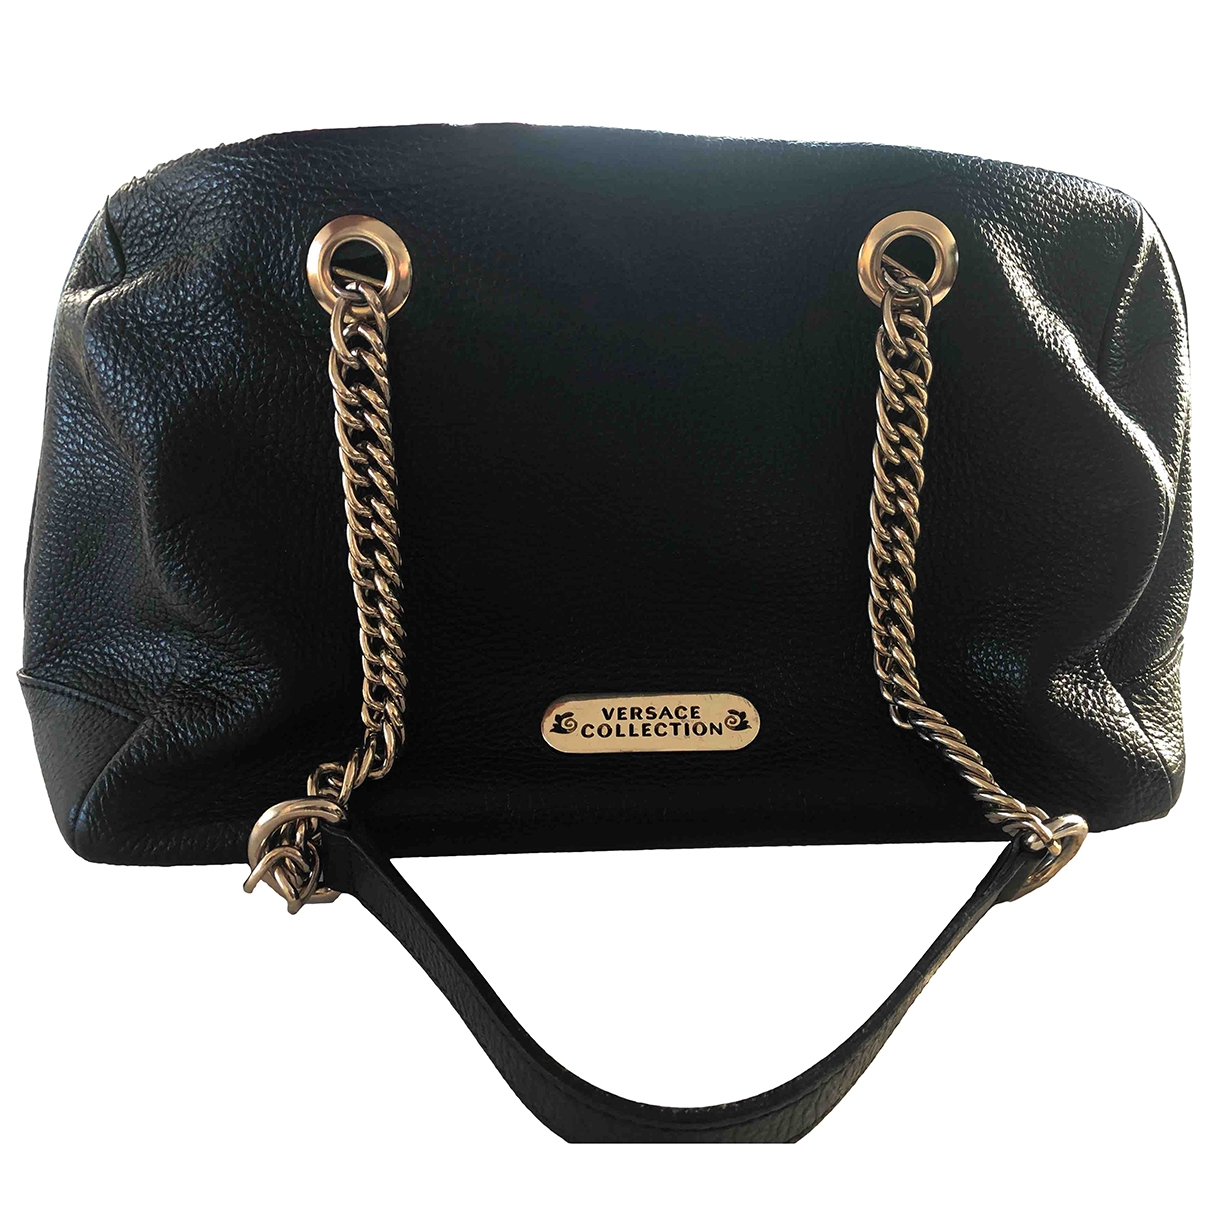 Versace \N Black Leather handbag for Women \N